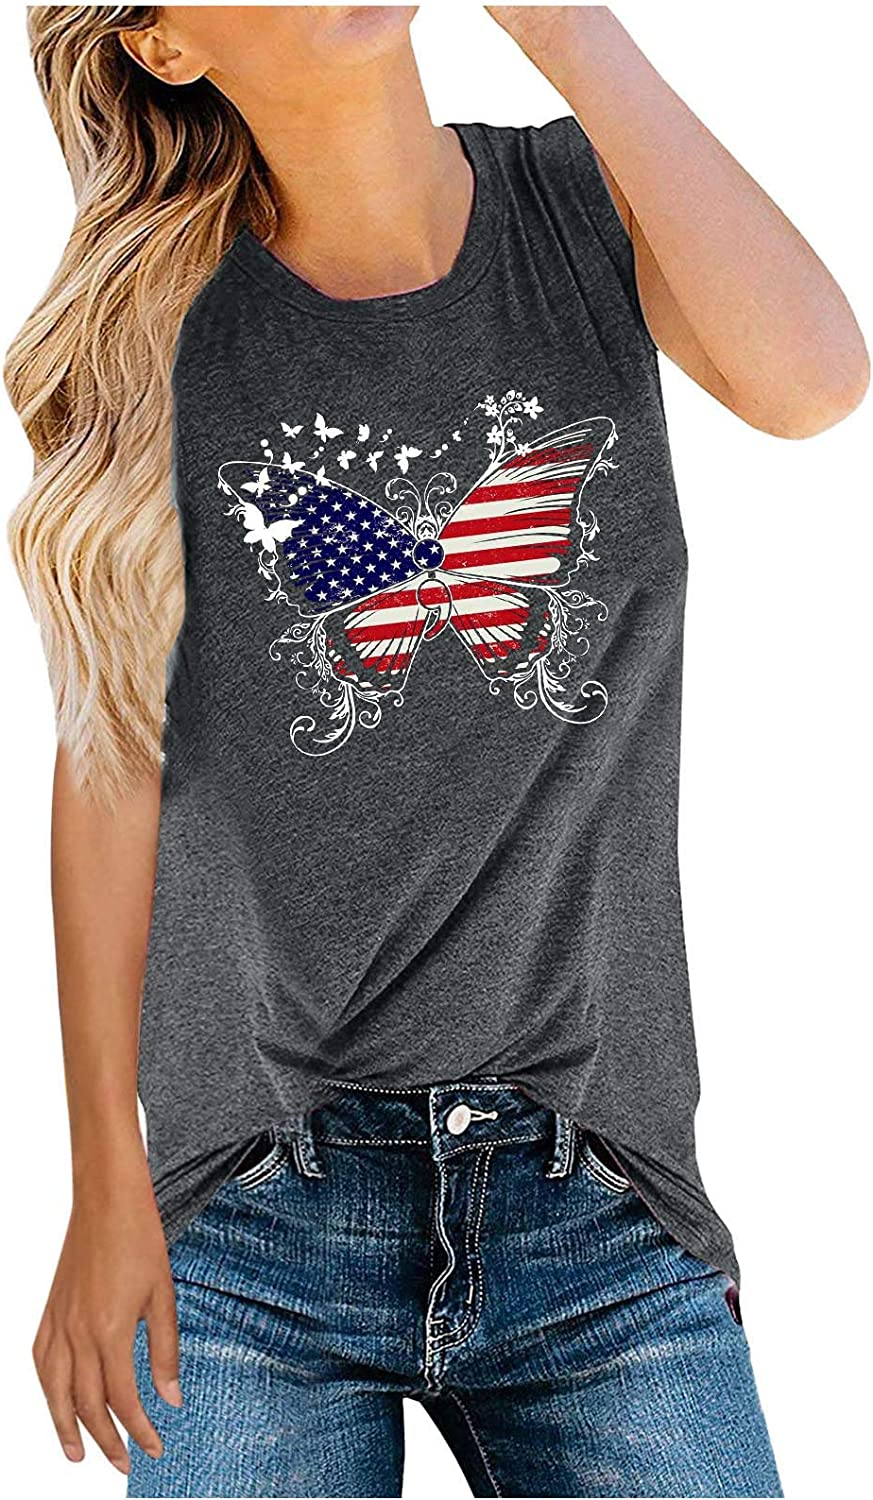 Tank Tops for Women, Summer Womens Casual Fashion Graphic Printed Sleeveless Tshirt with Butterfly July 4th